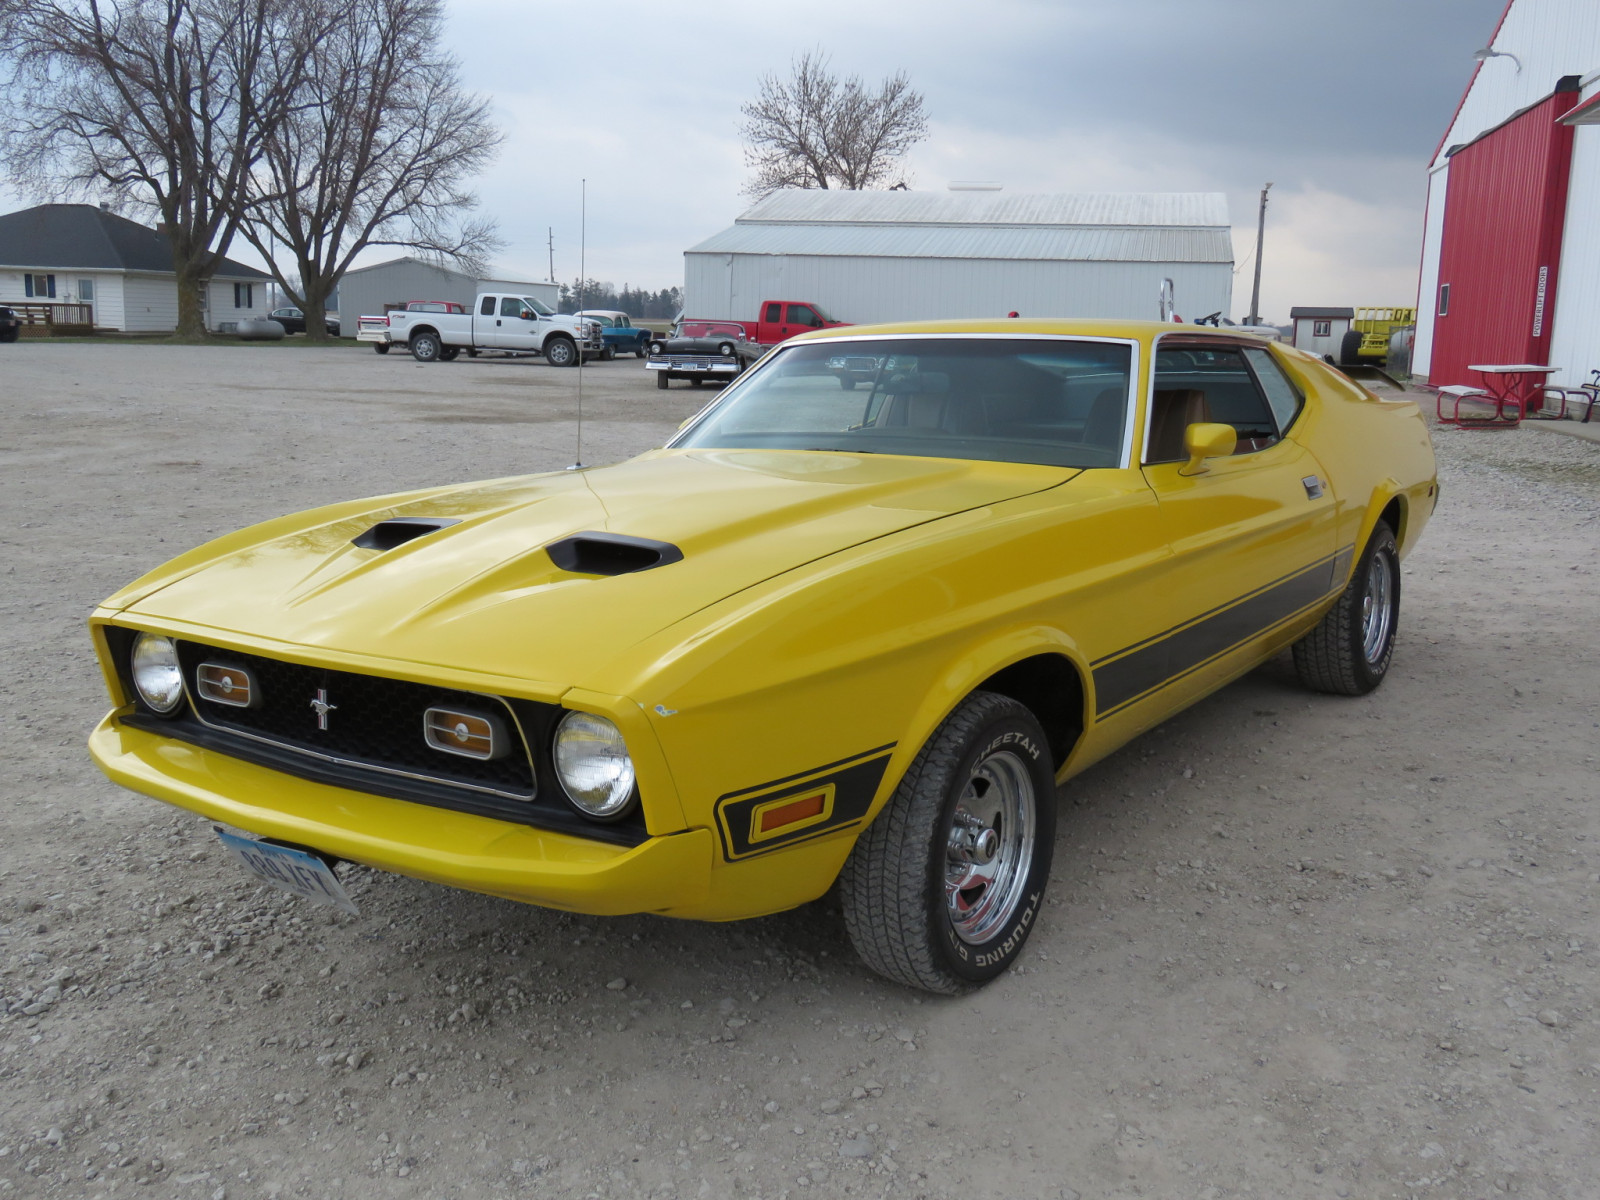 1973 Ford Mach 1 Mustang Coupe - Image 3